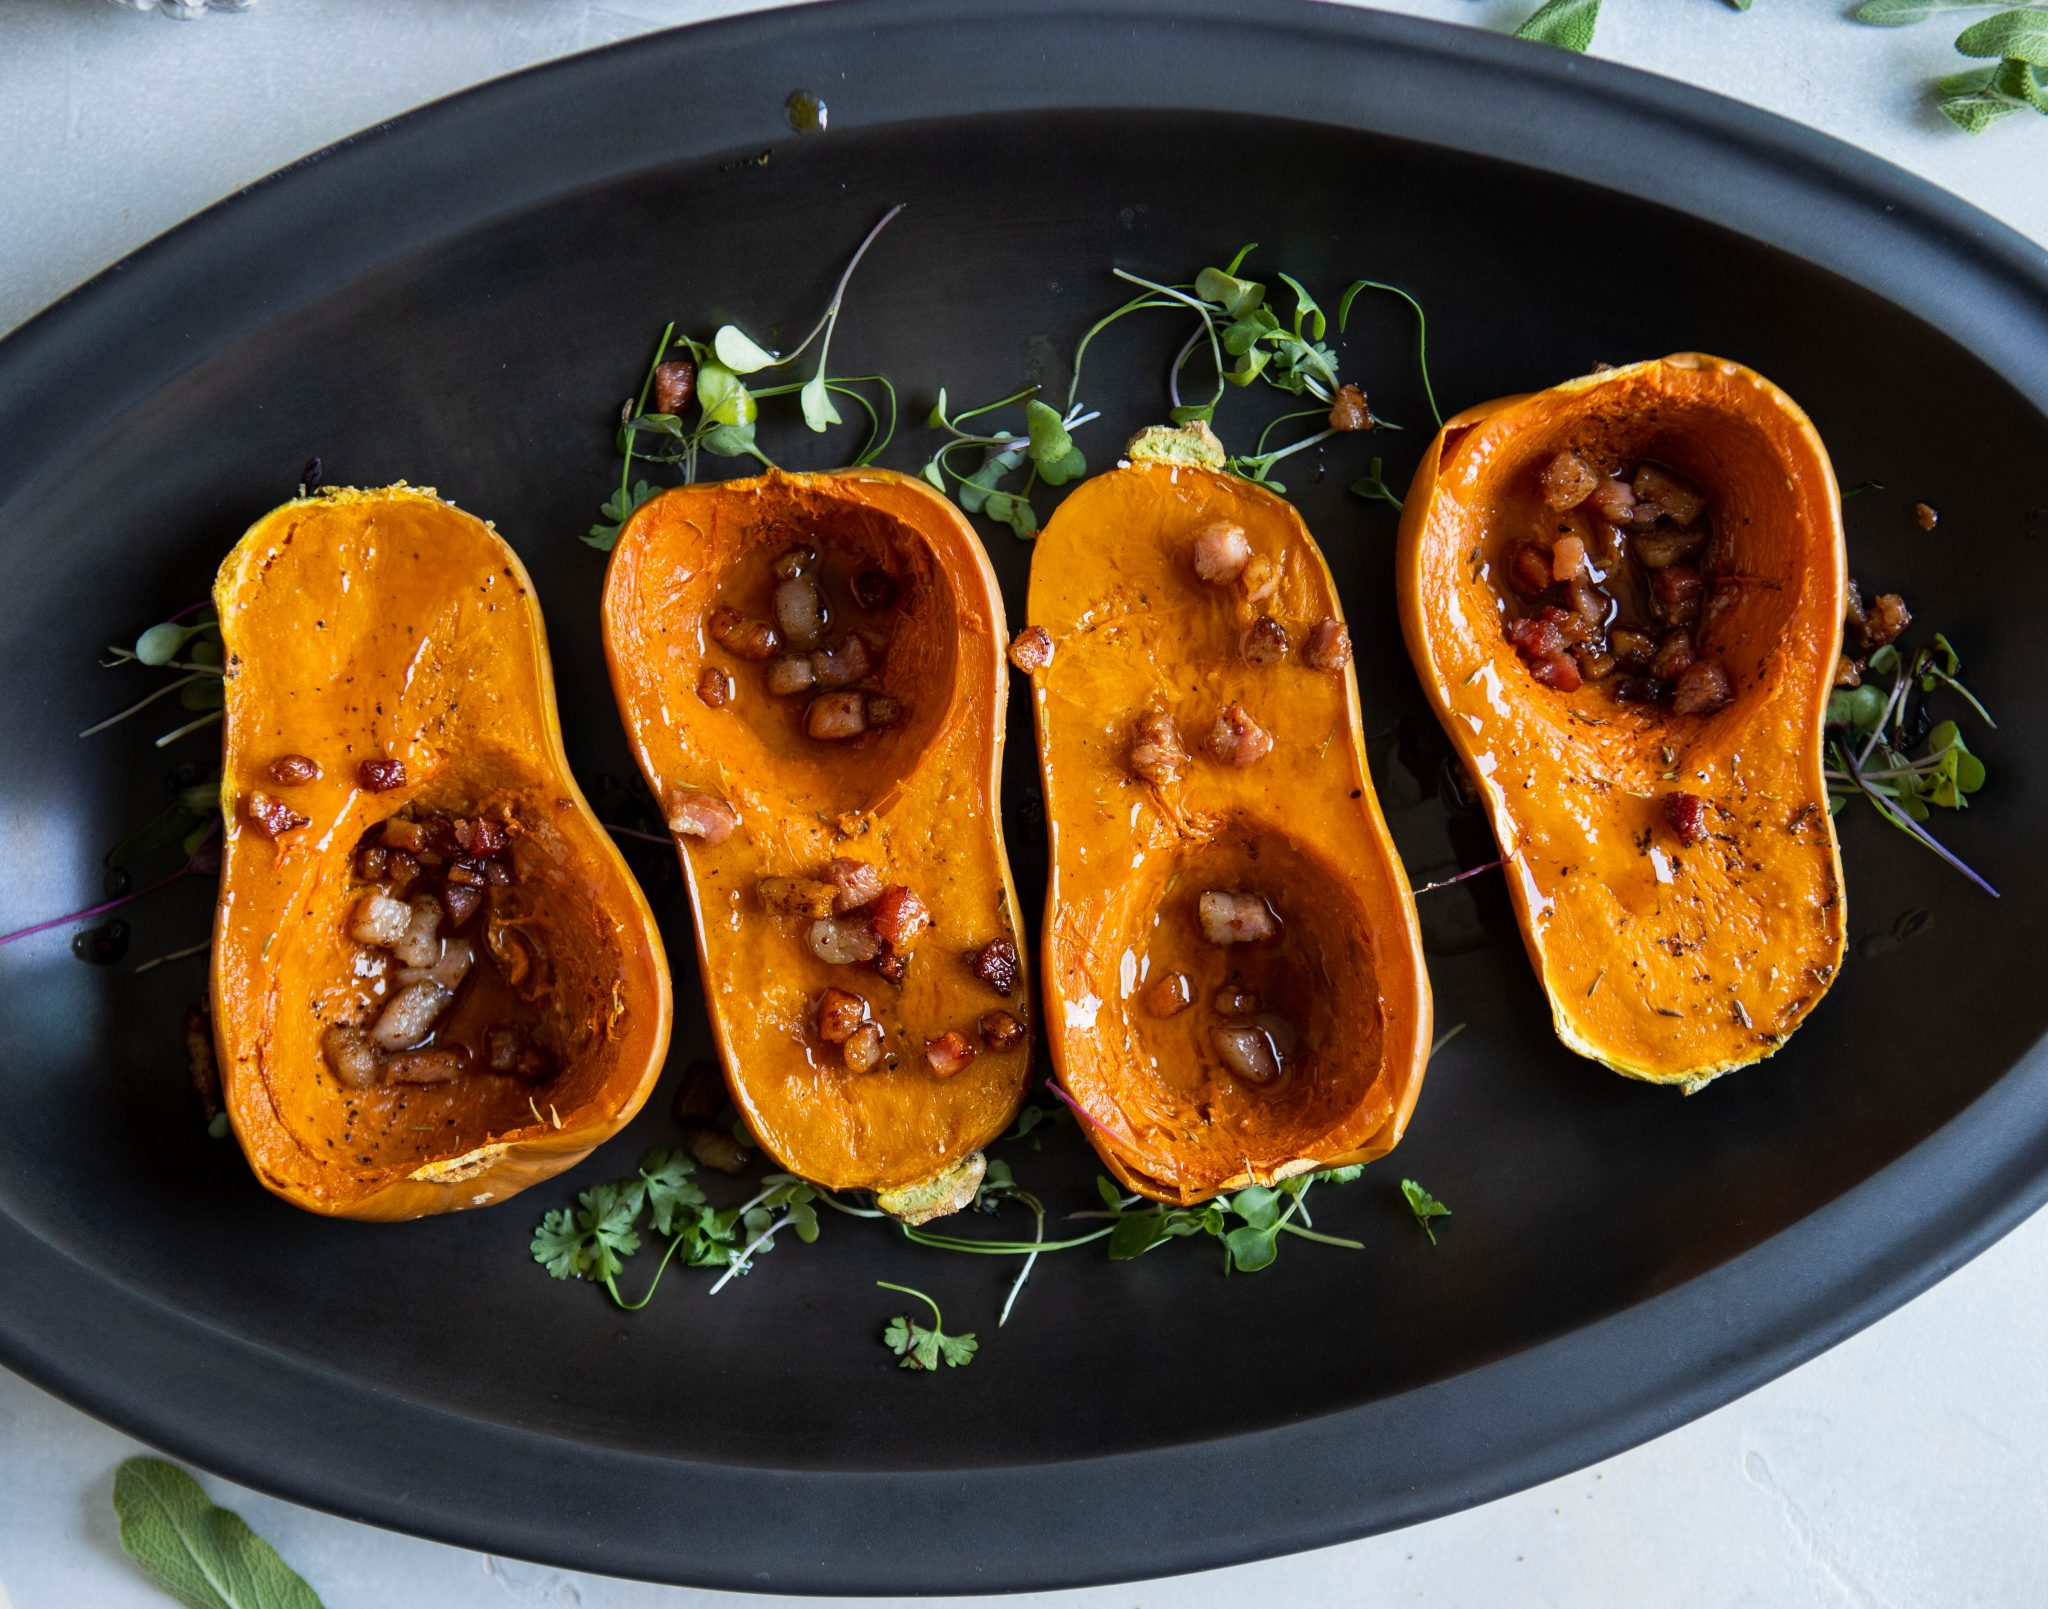 4 small butternut squashes with maple butter and pancetta sprinkled on top